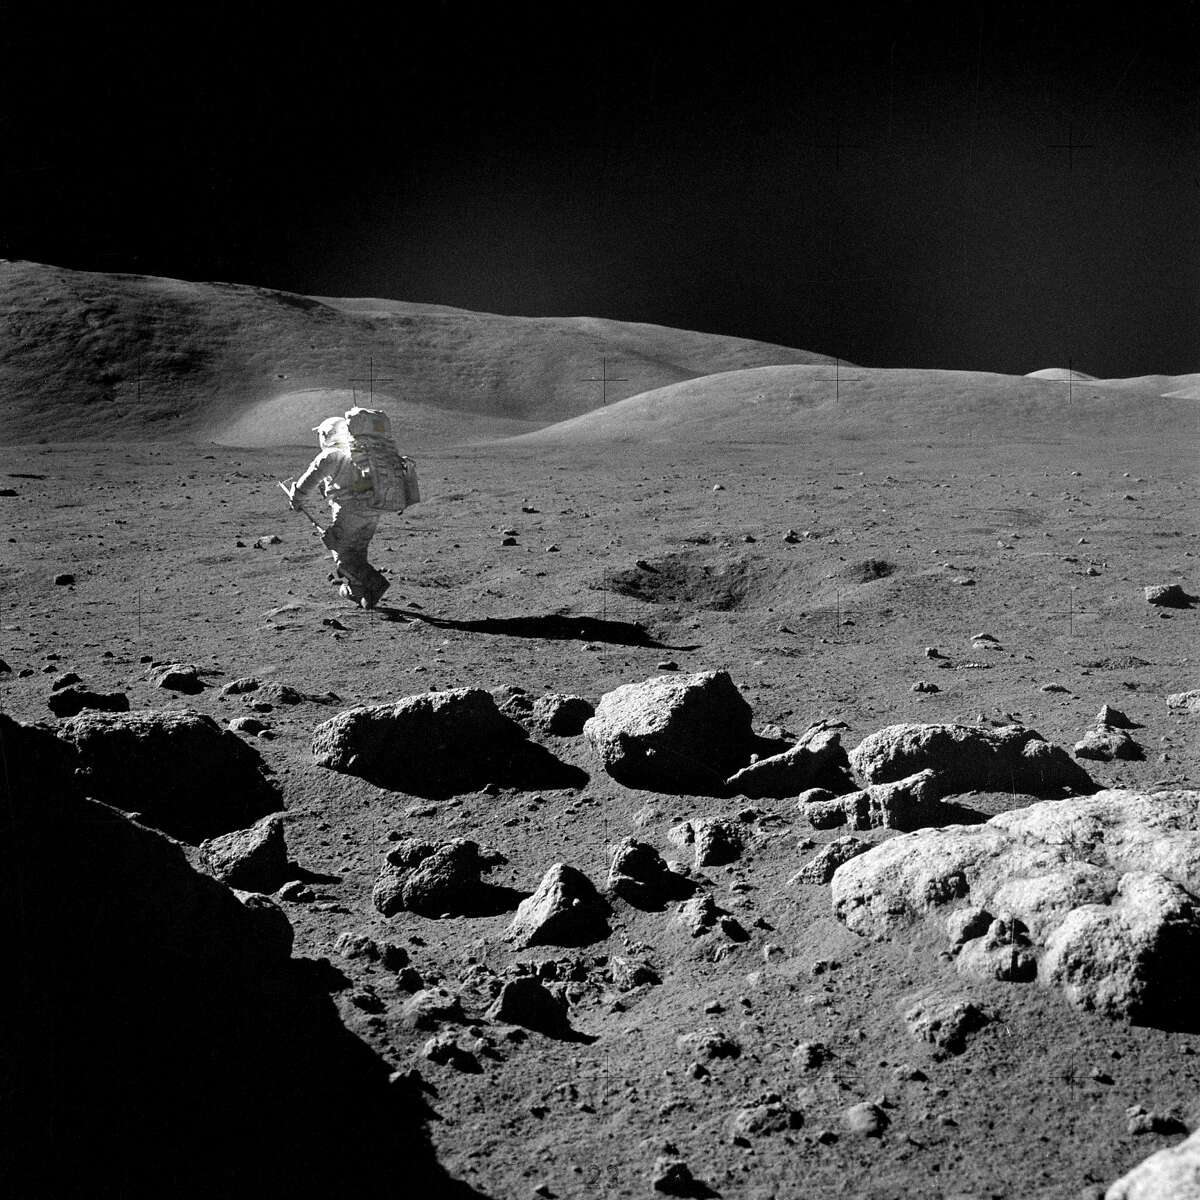 Harrison Schmitt heads for a selected rock on the lunar surface to retrieve the sample for study. The action was photographed by Apollo 17 crew commander, astronaut Eugene Cernan.